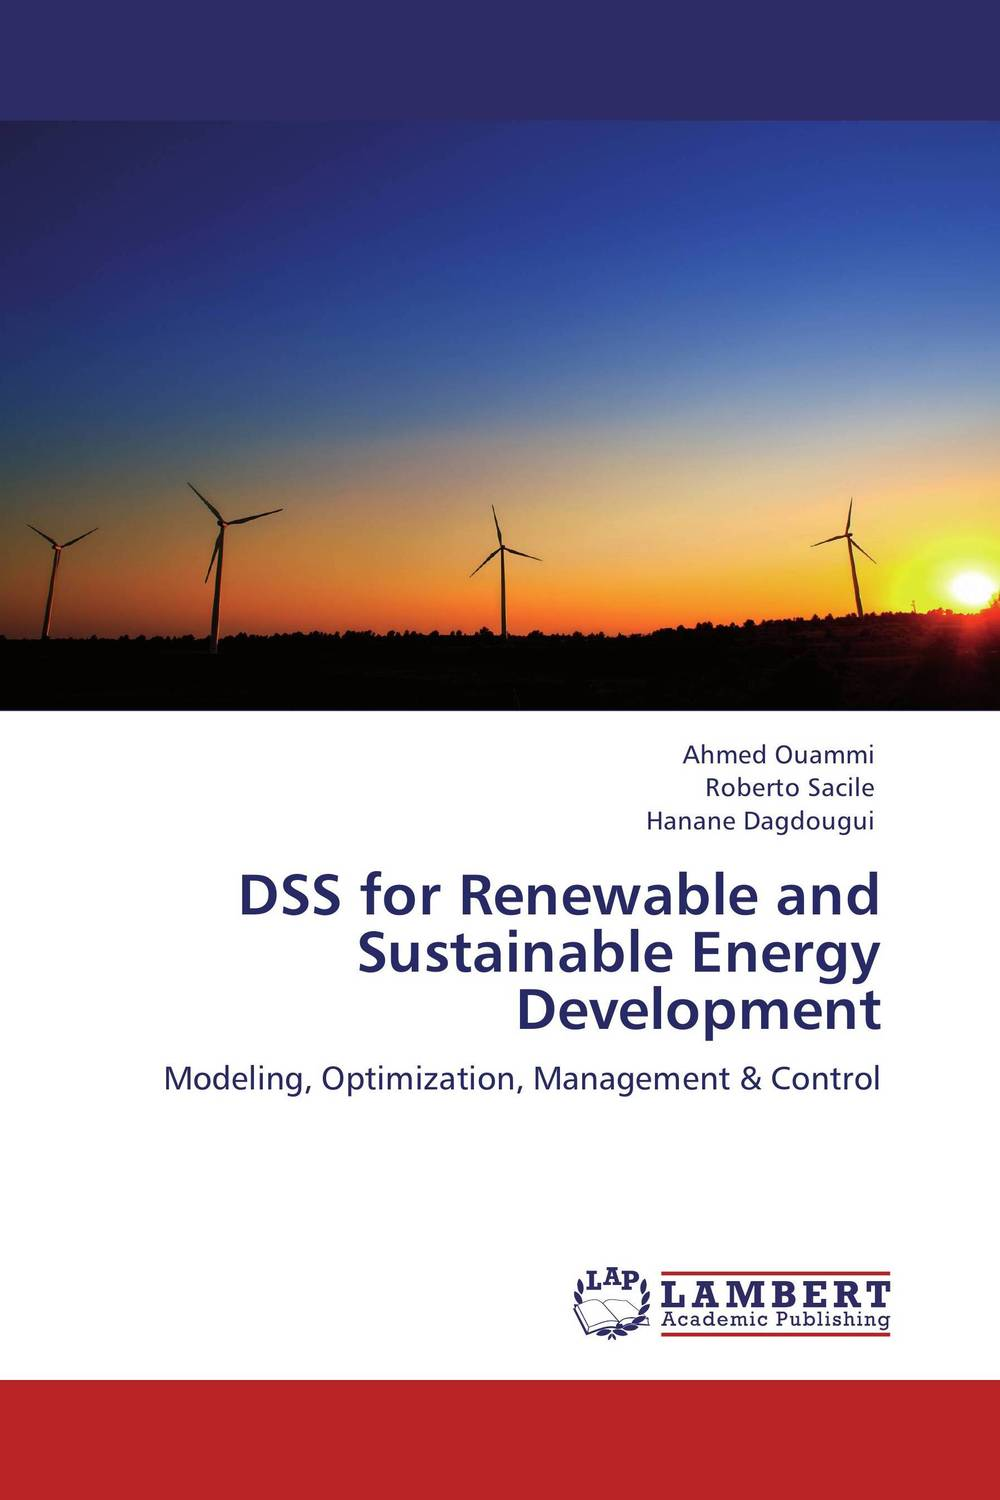 DSS for Renewable and Sustainable Energy Development 019675 arlight